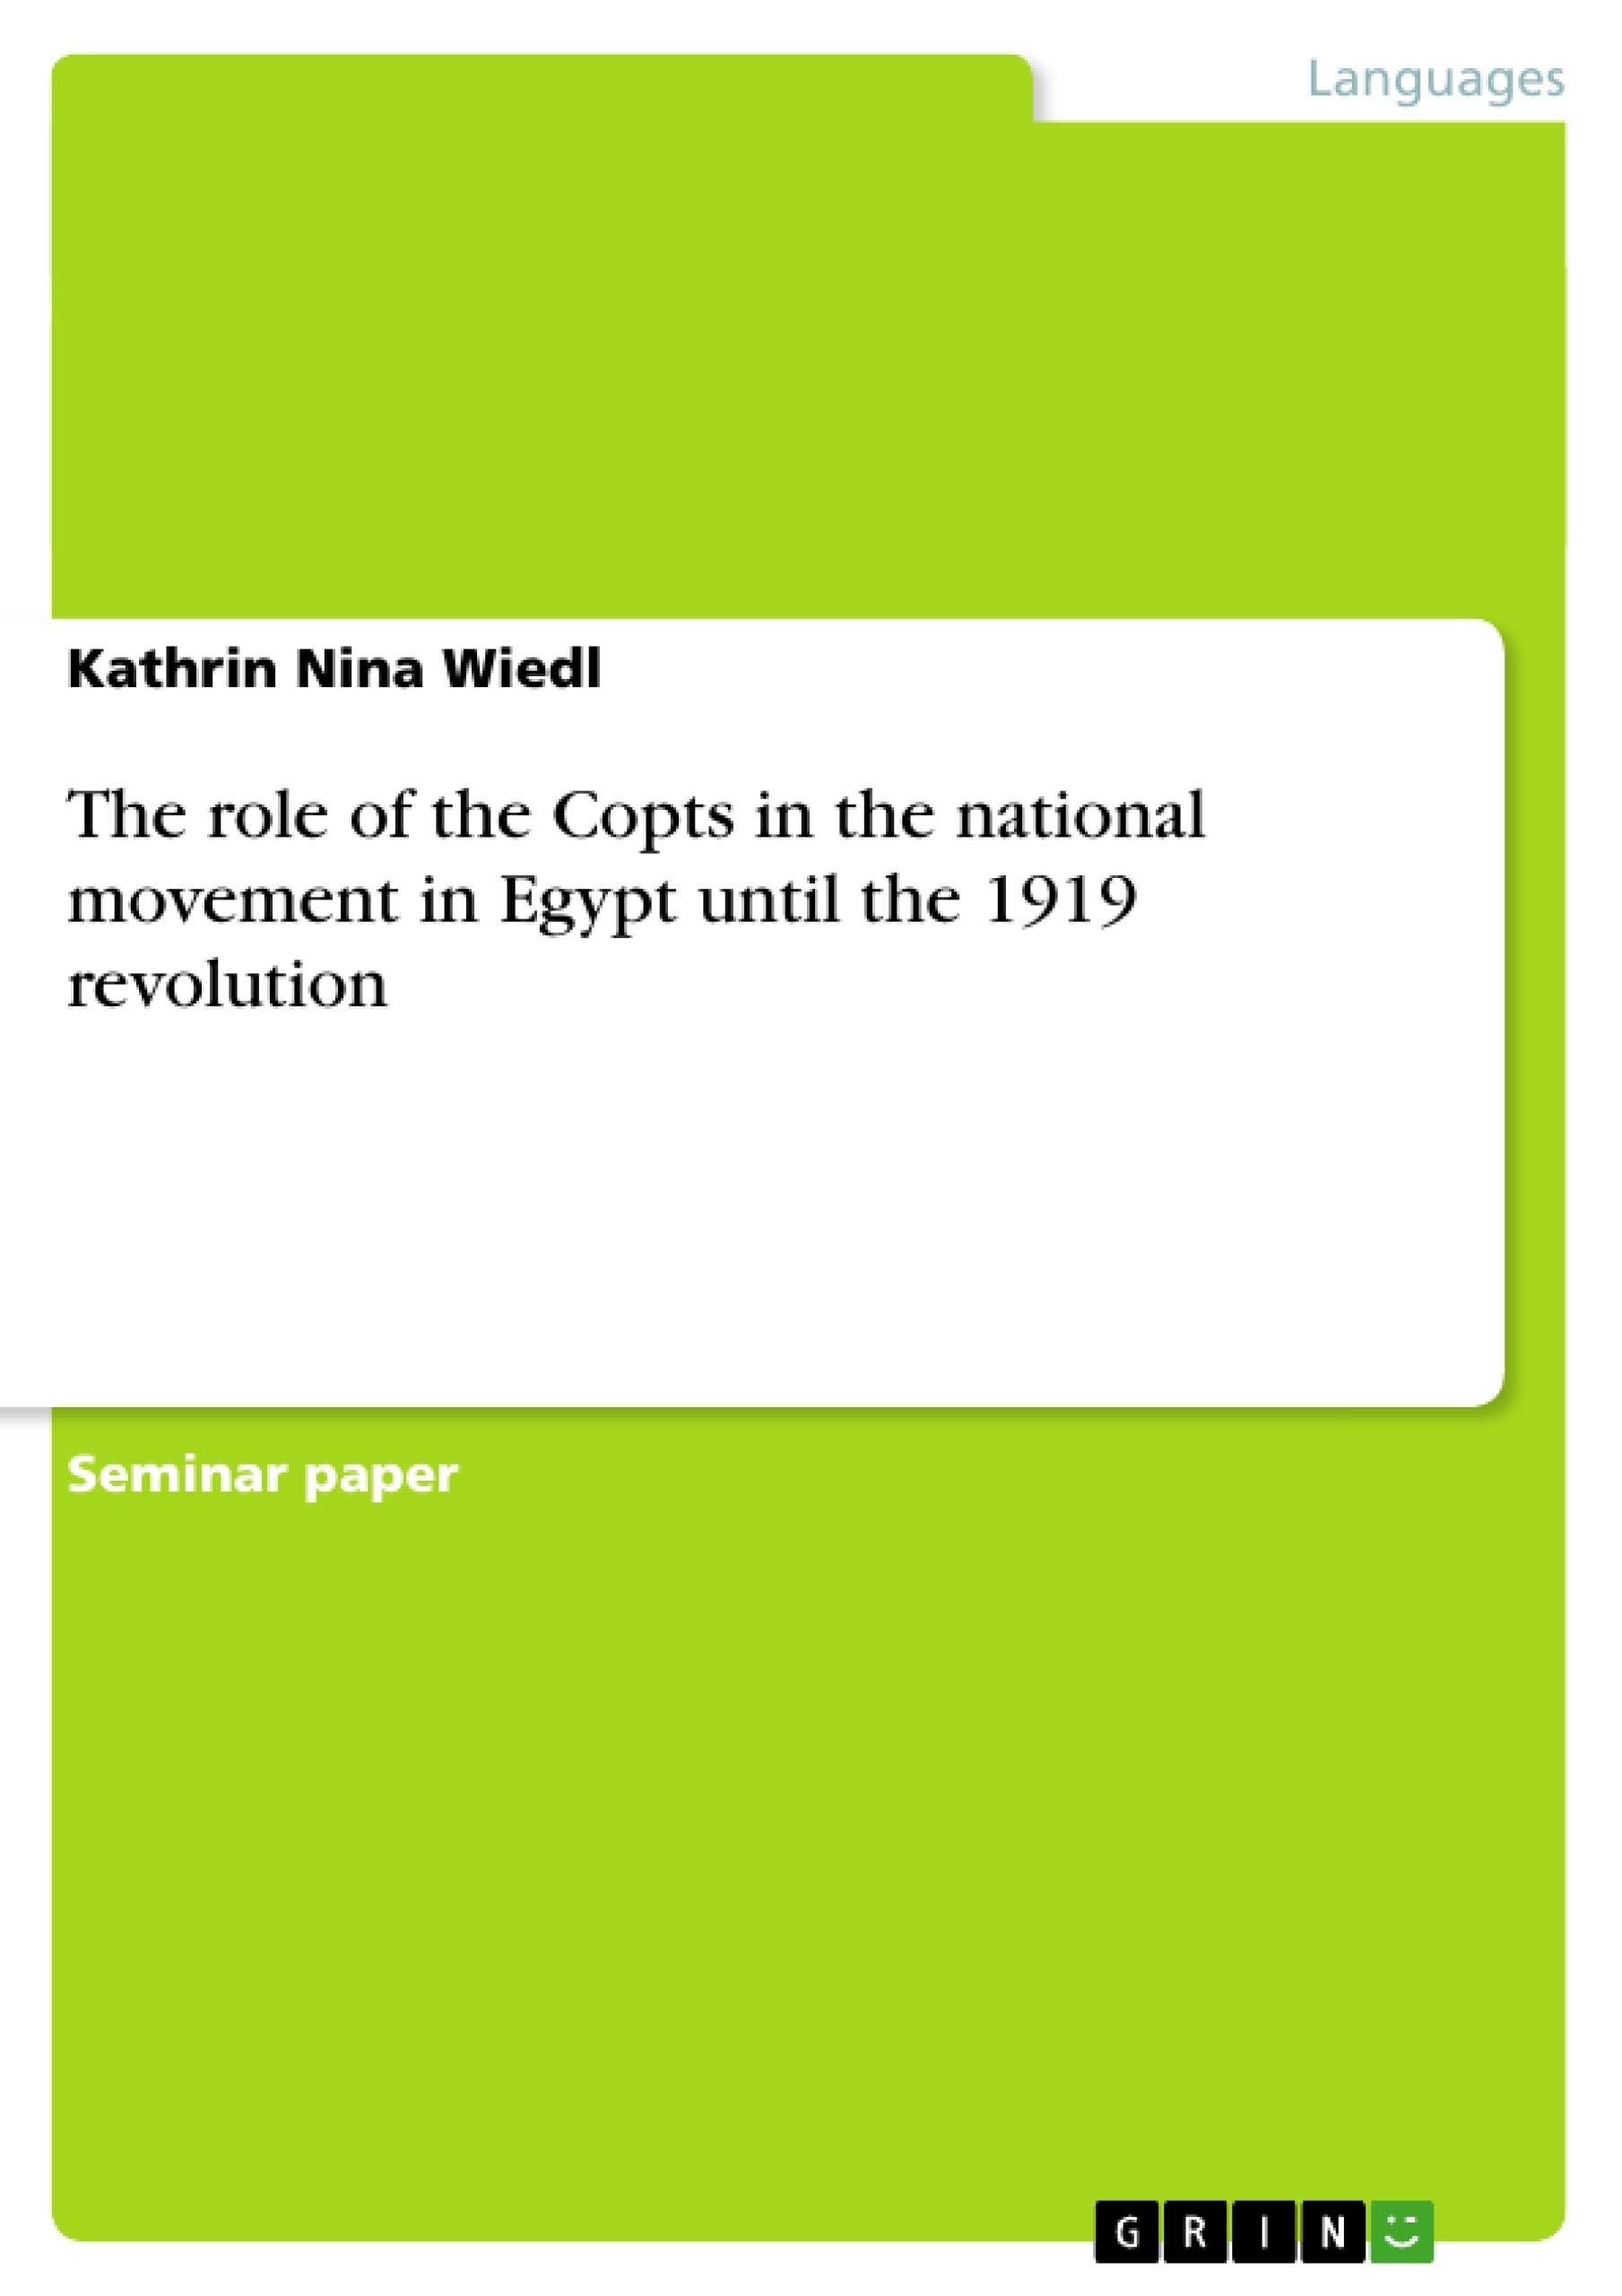 Title: The role of the Copts in the national movement in Egypt until the 1919 revolution